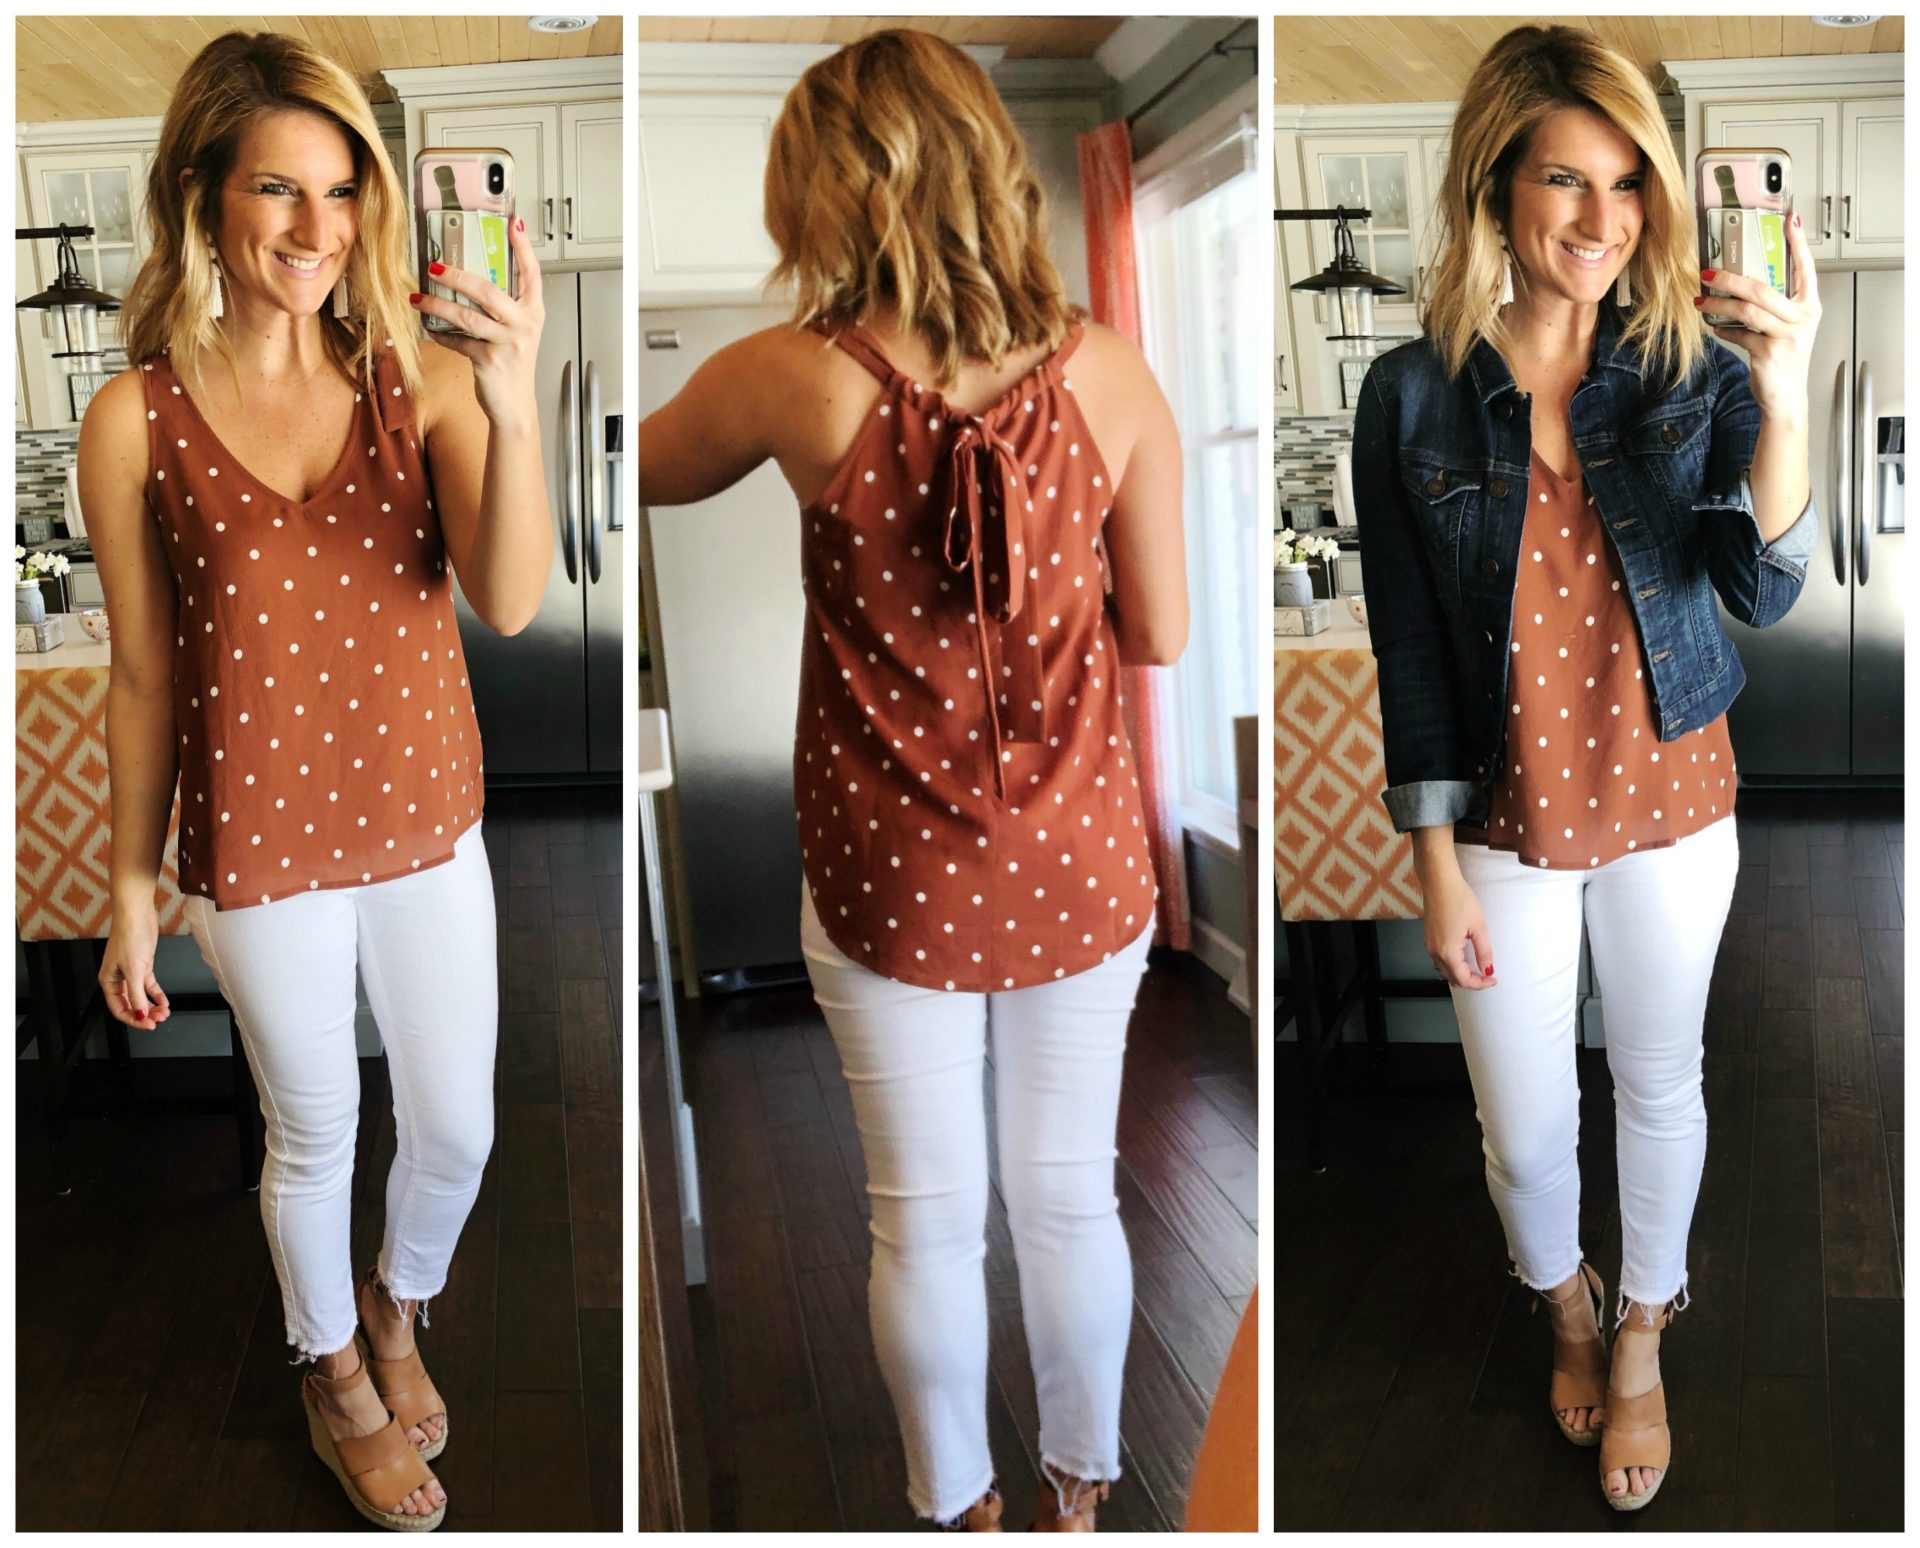 Cute Summer Outfit // Transitional Outfit // Denim Jacket // White Skinny Jeans // Polka Dot Top // Spring Fashion